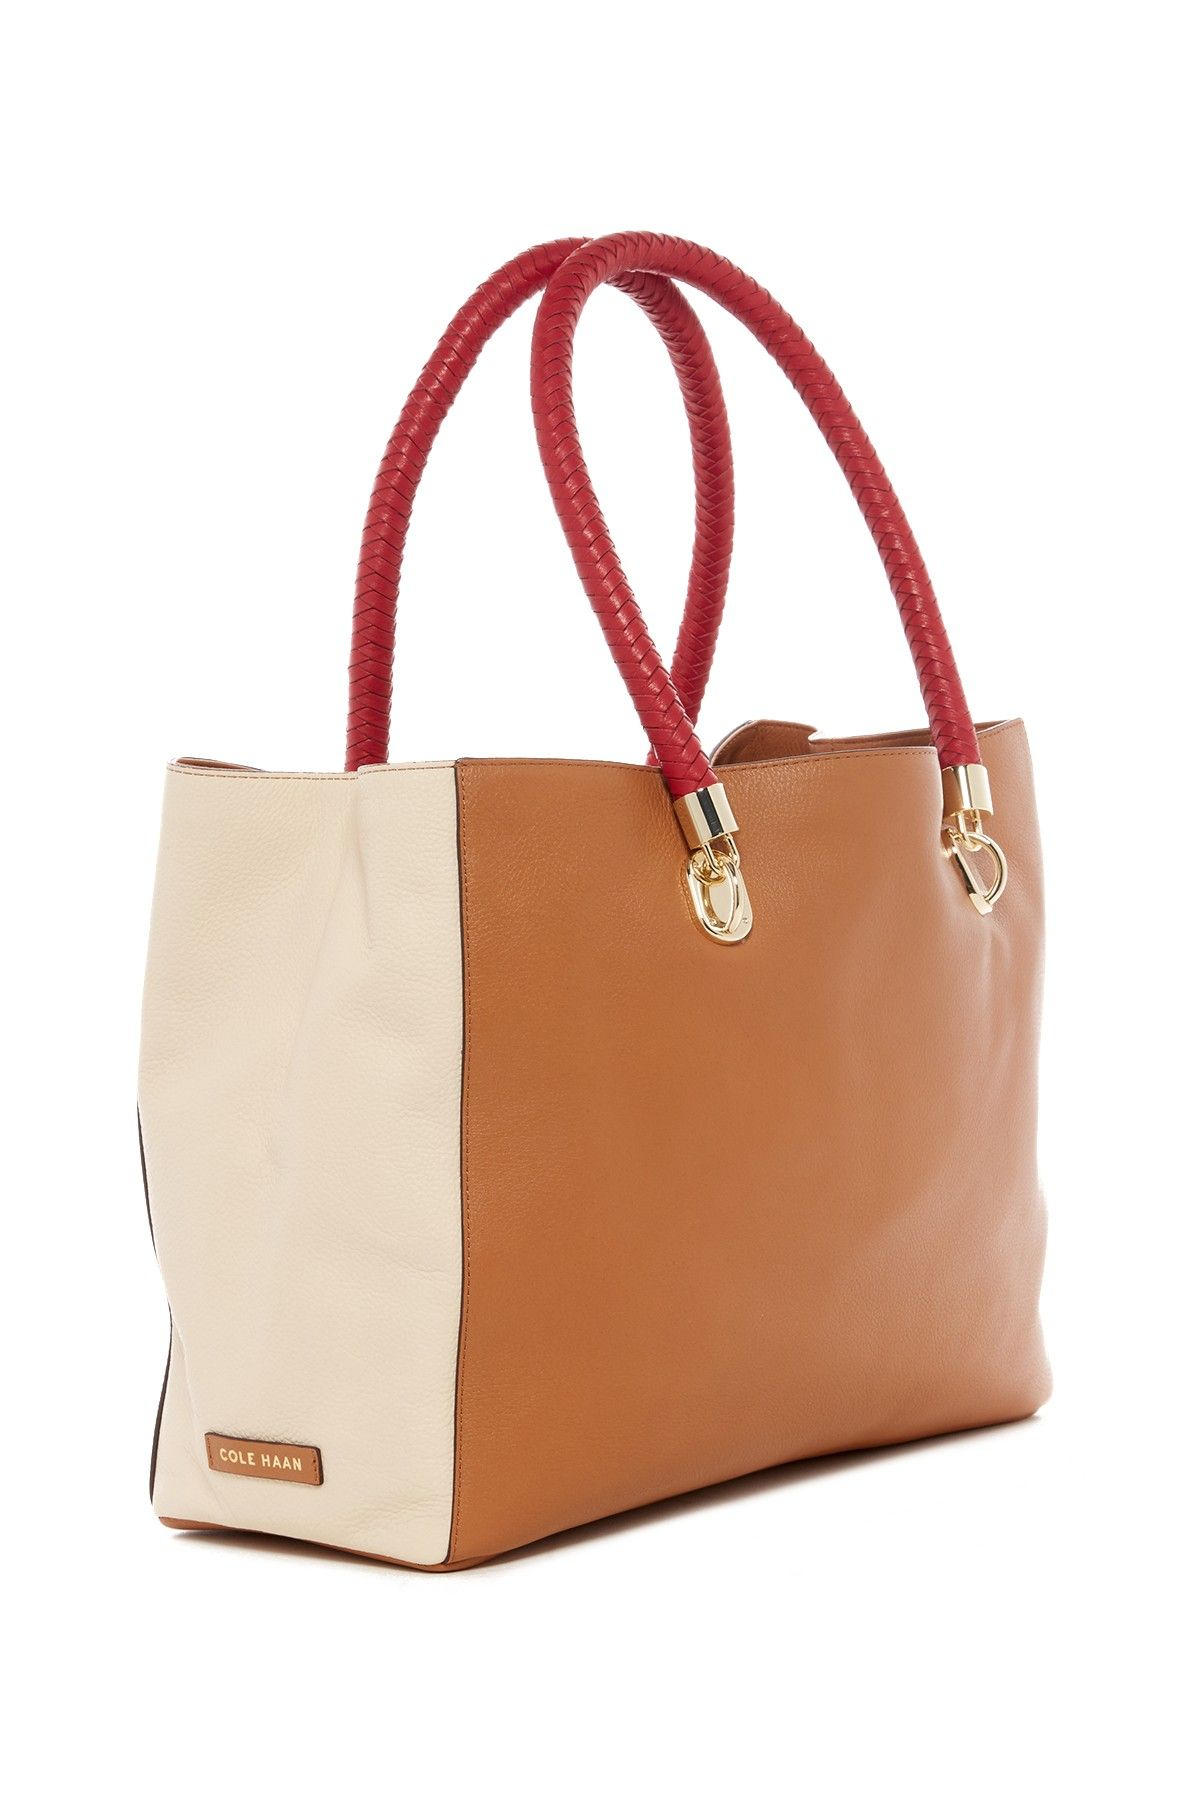 52234a8d6d5 Benson Large Leather Tote by Cole Haan on  nordstrom rack